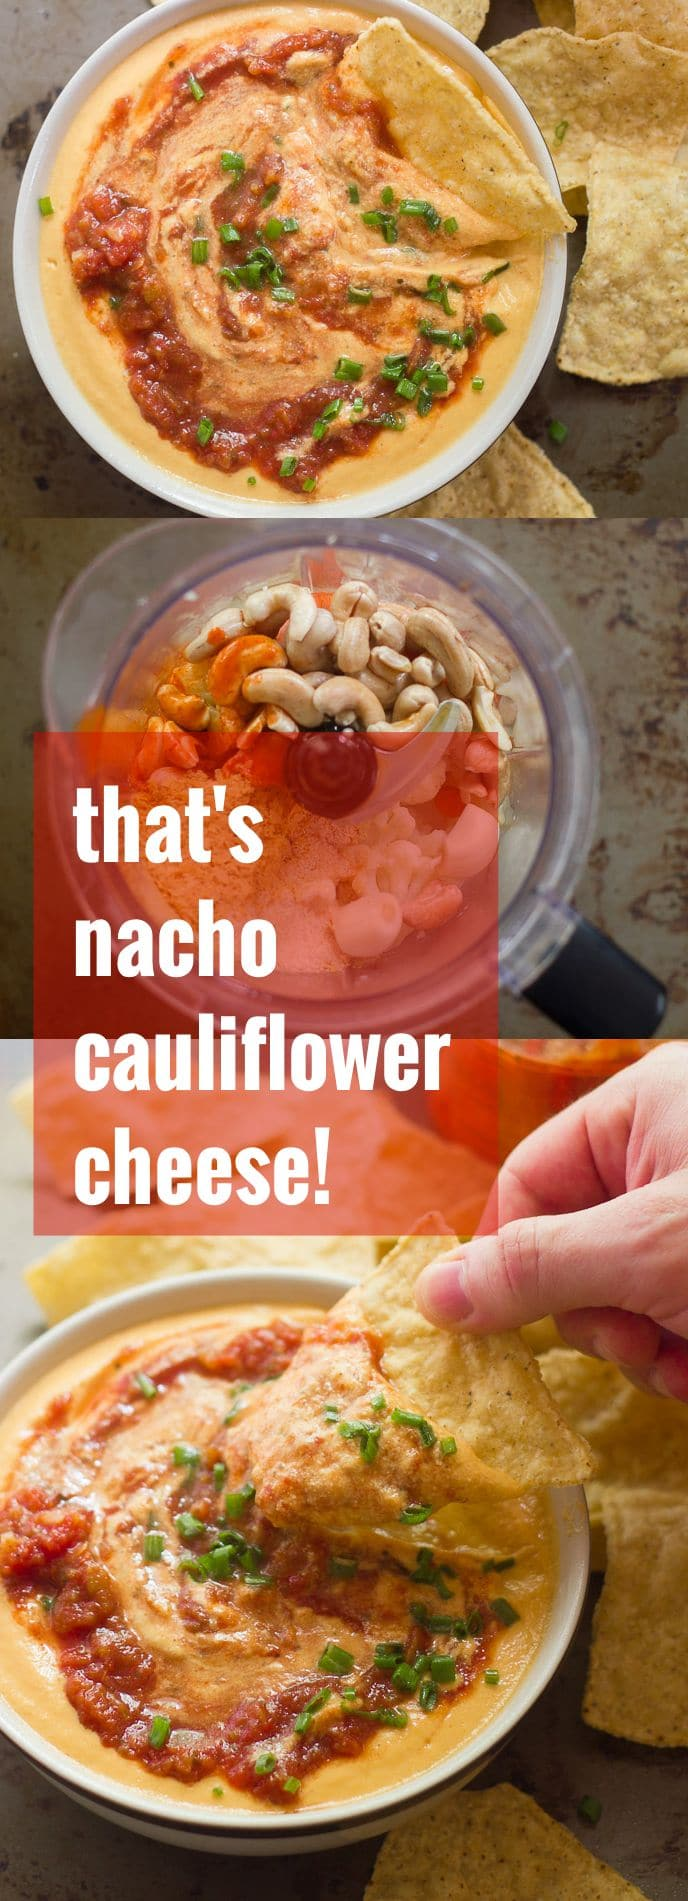 That's Nacho Cauliflower Cheese!